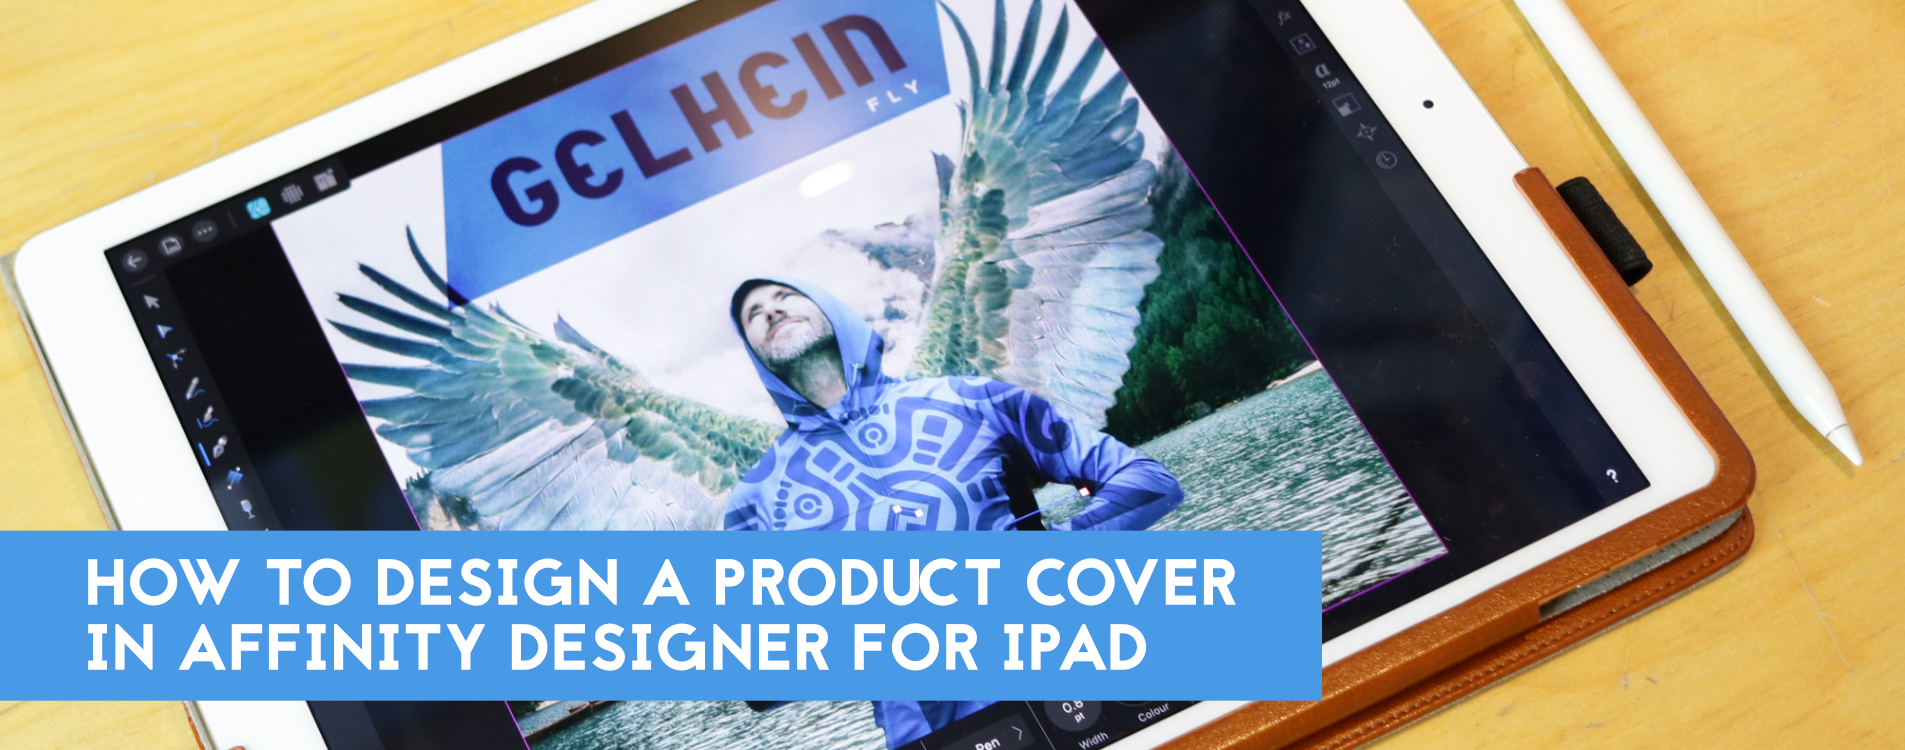 How to design album cover graphics with Affinity Designer for iPad